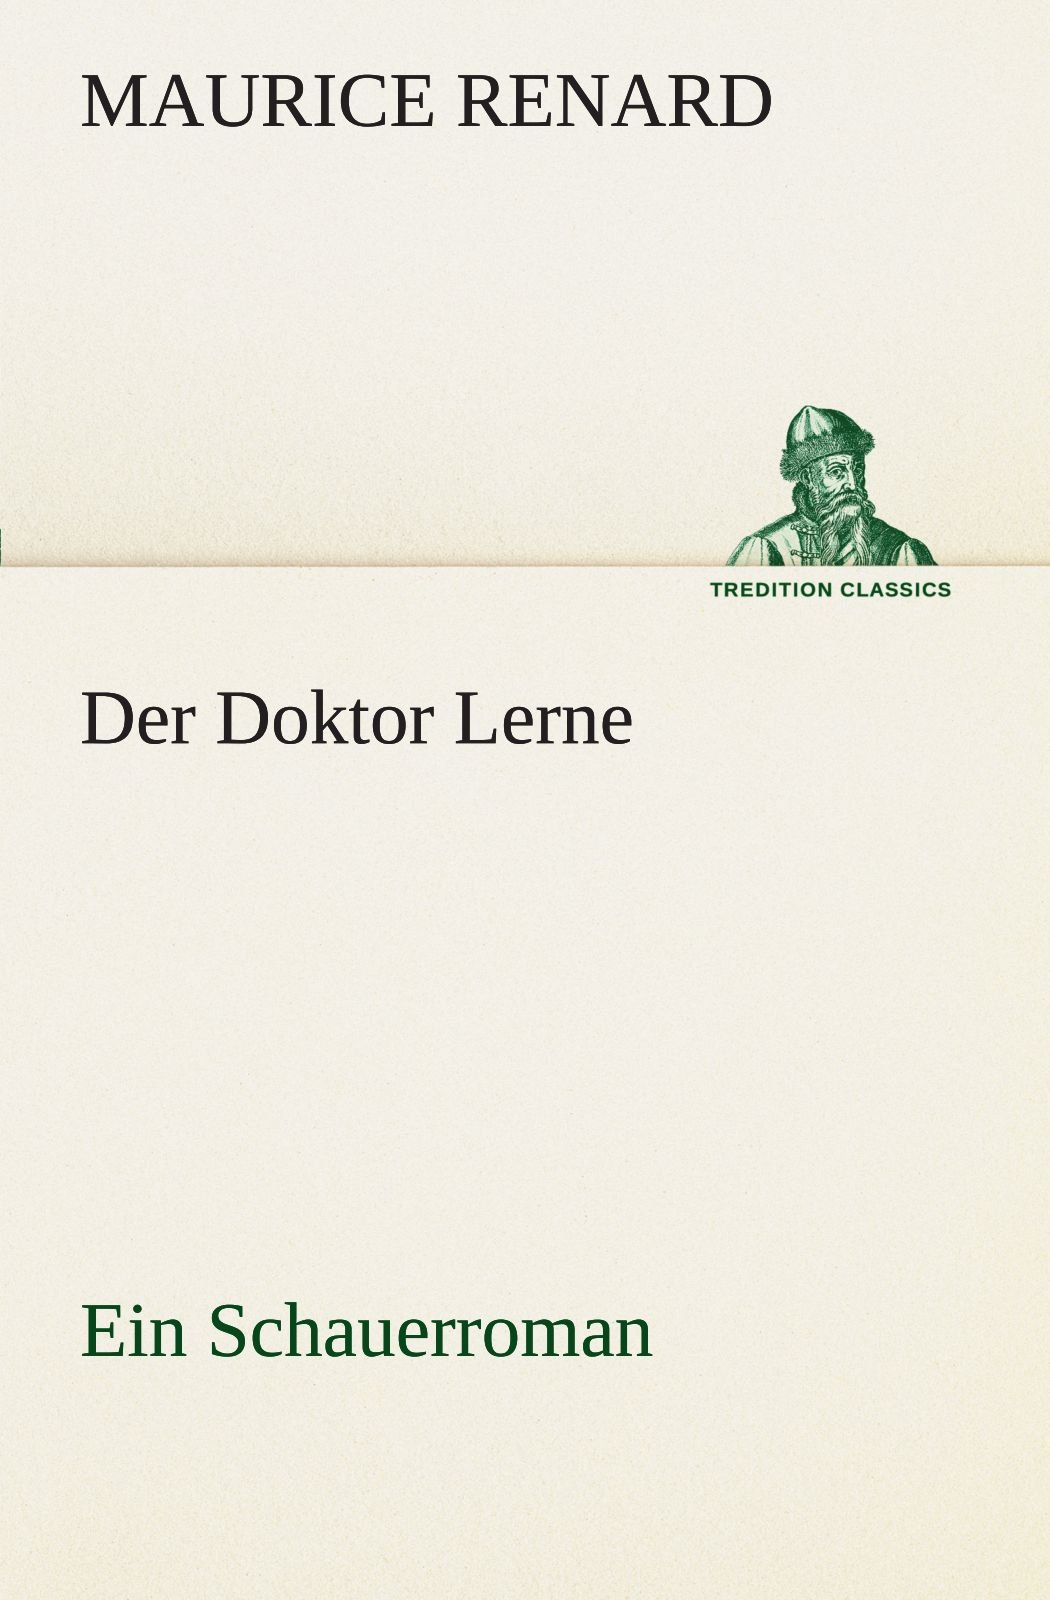 Download Der Doktor Lerne: Ein Schauerroman (TREDITION CLASSICS) (German Edition) ebook